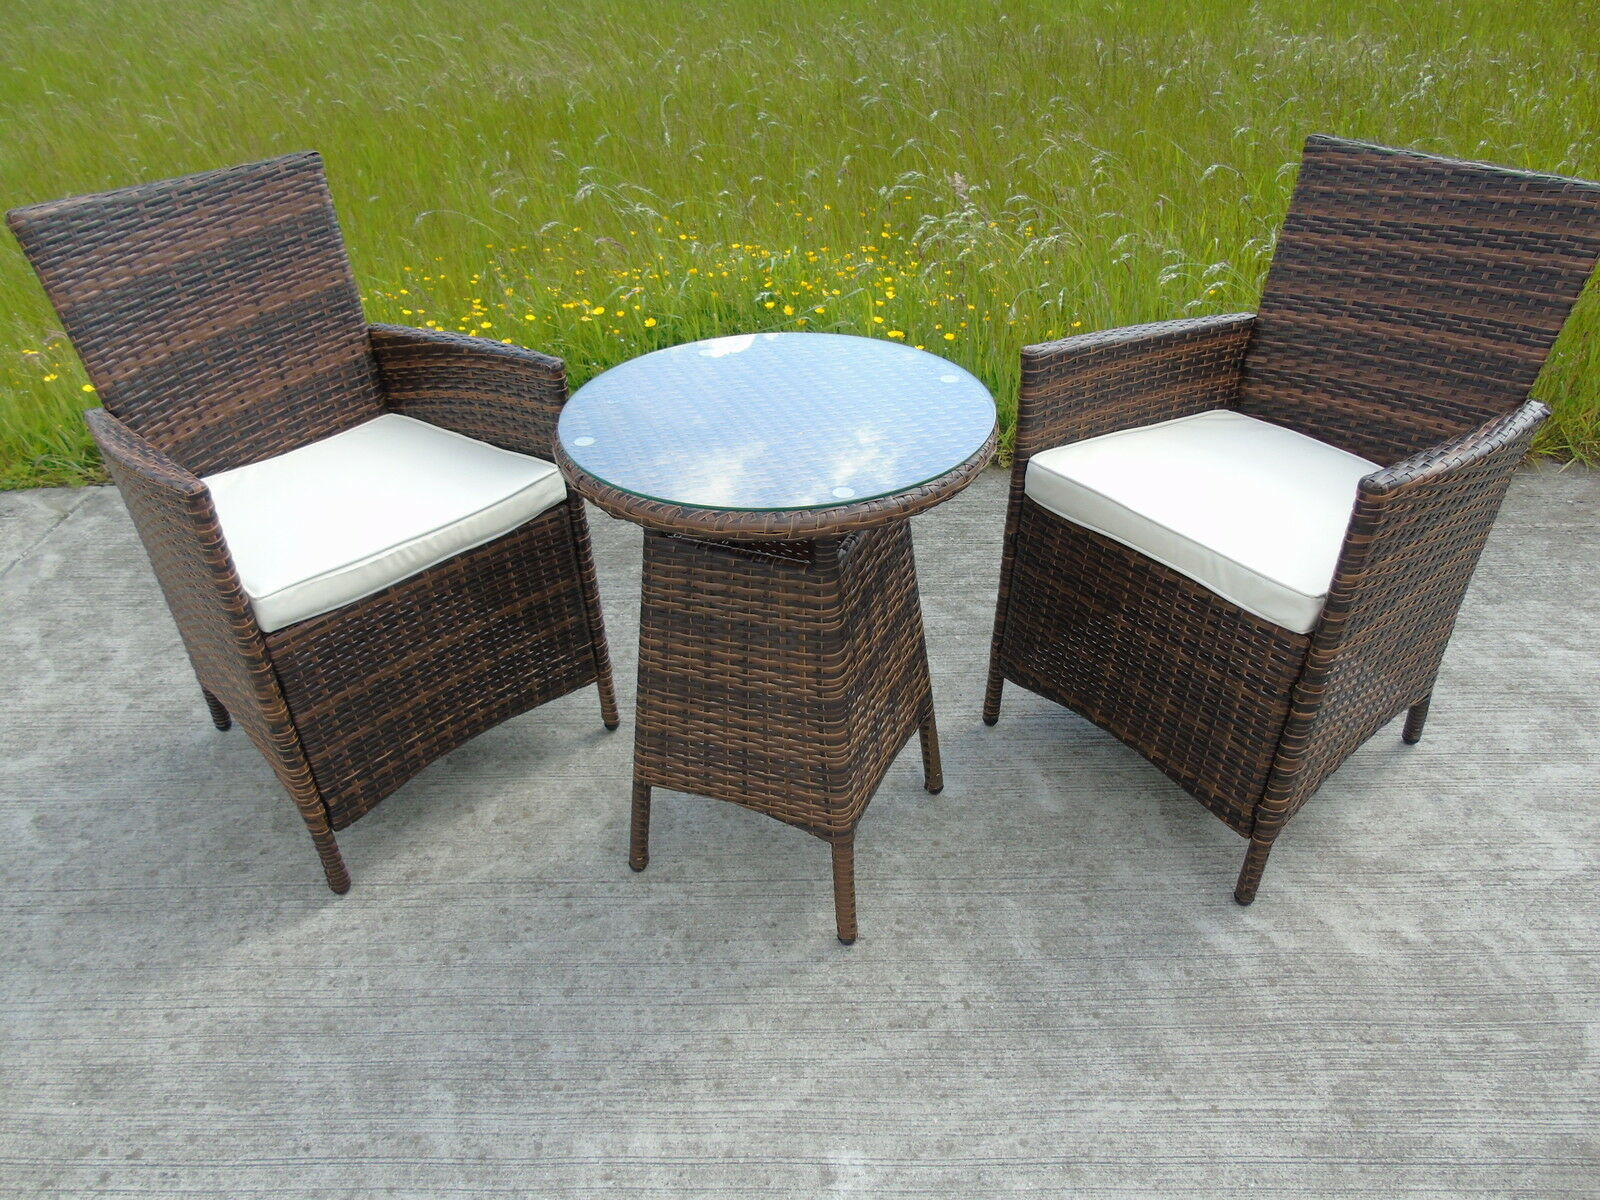 2 Seater Rattan Sofa Uk Rattan 2 Two Seater Chairs Dining Wicker Bistro Outdoor